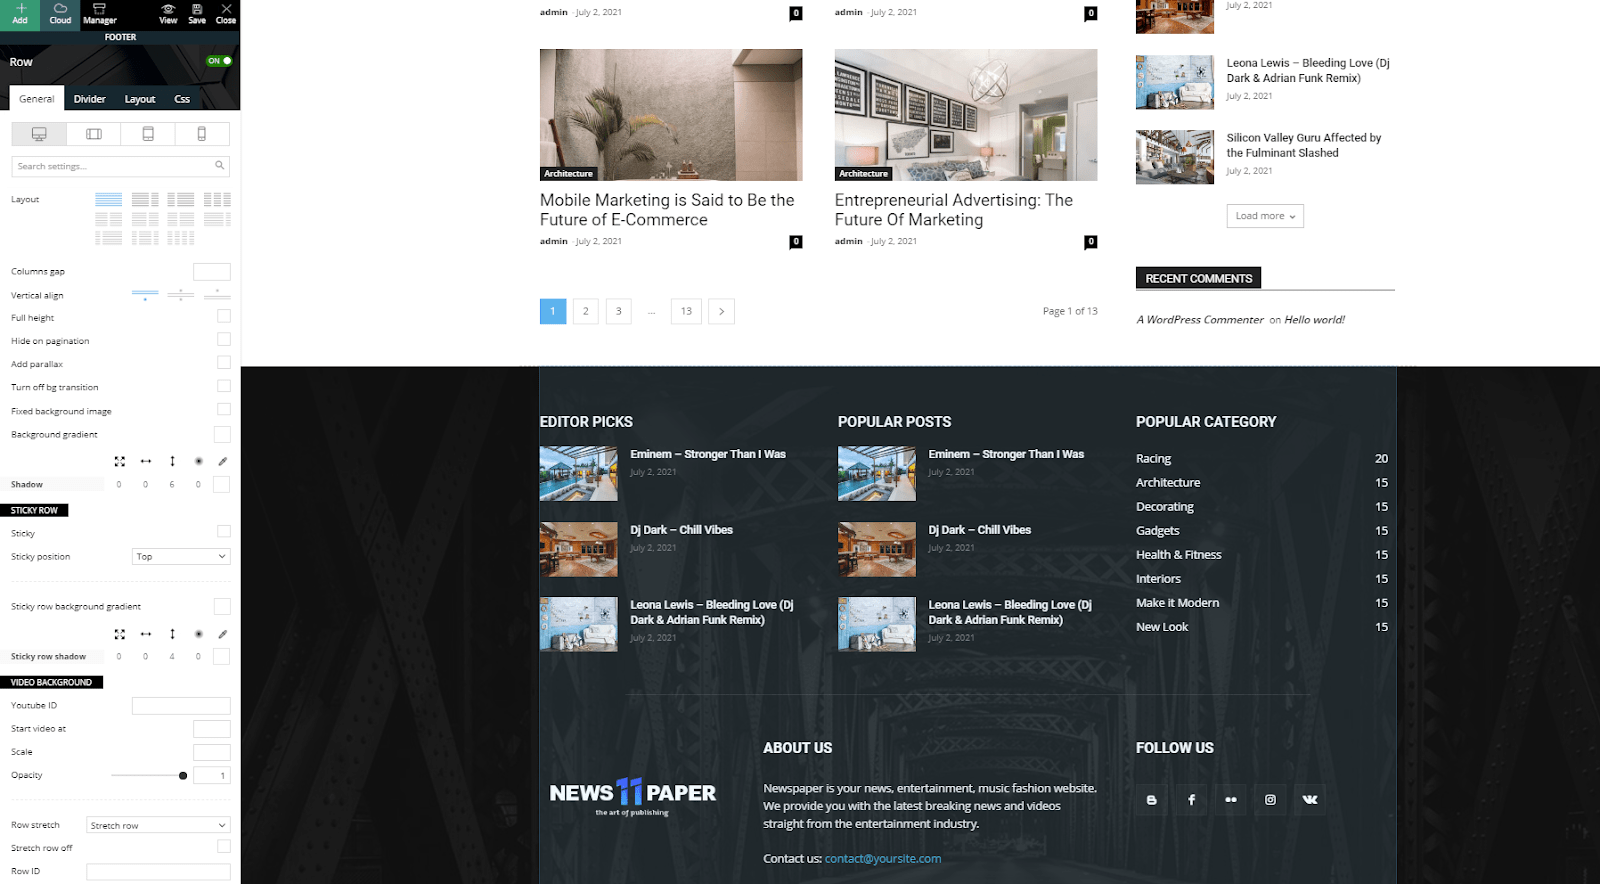 How to edit Header and Footer Areas on Newspaper Theme